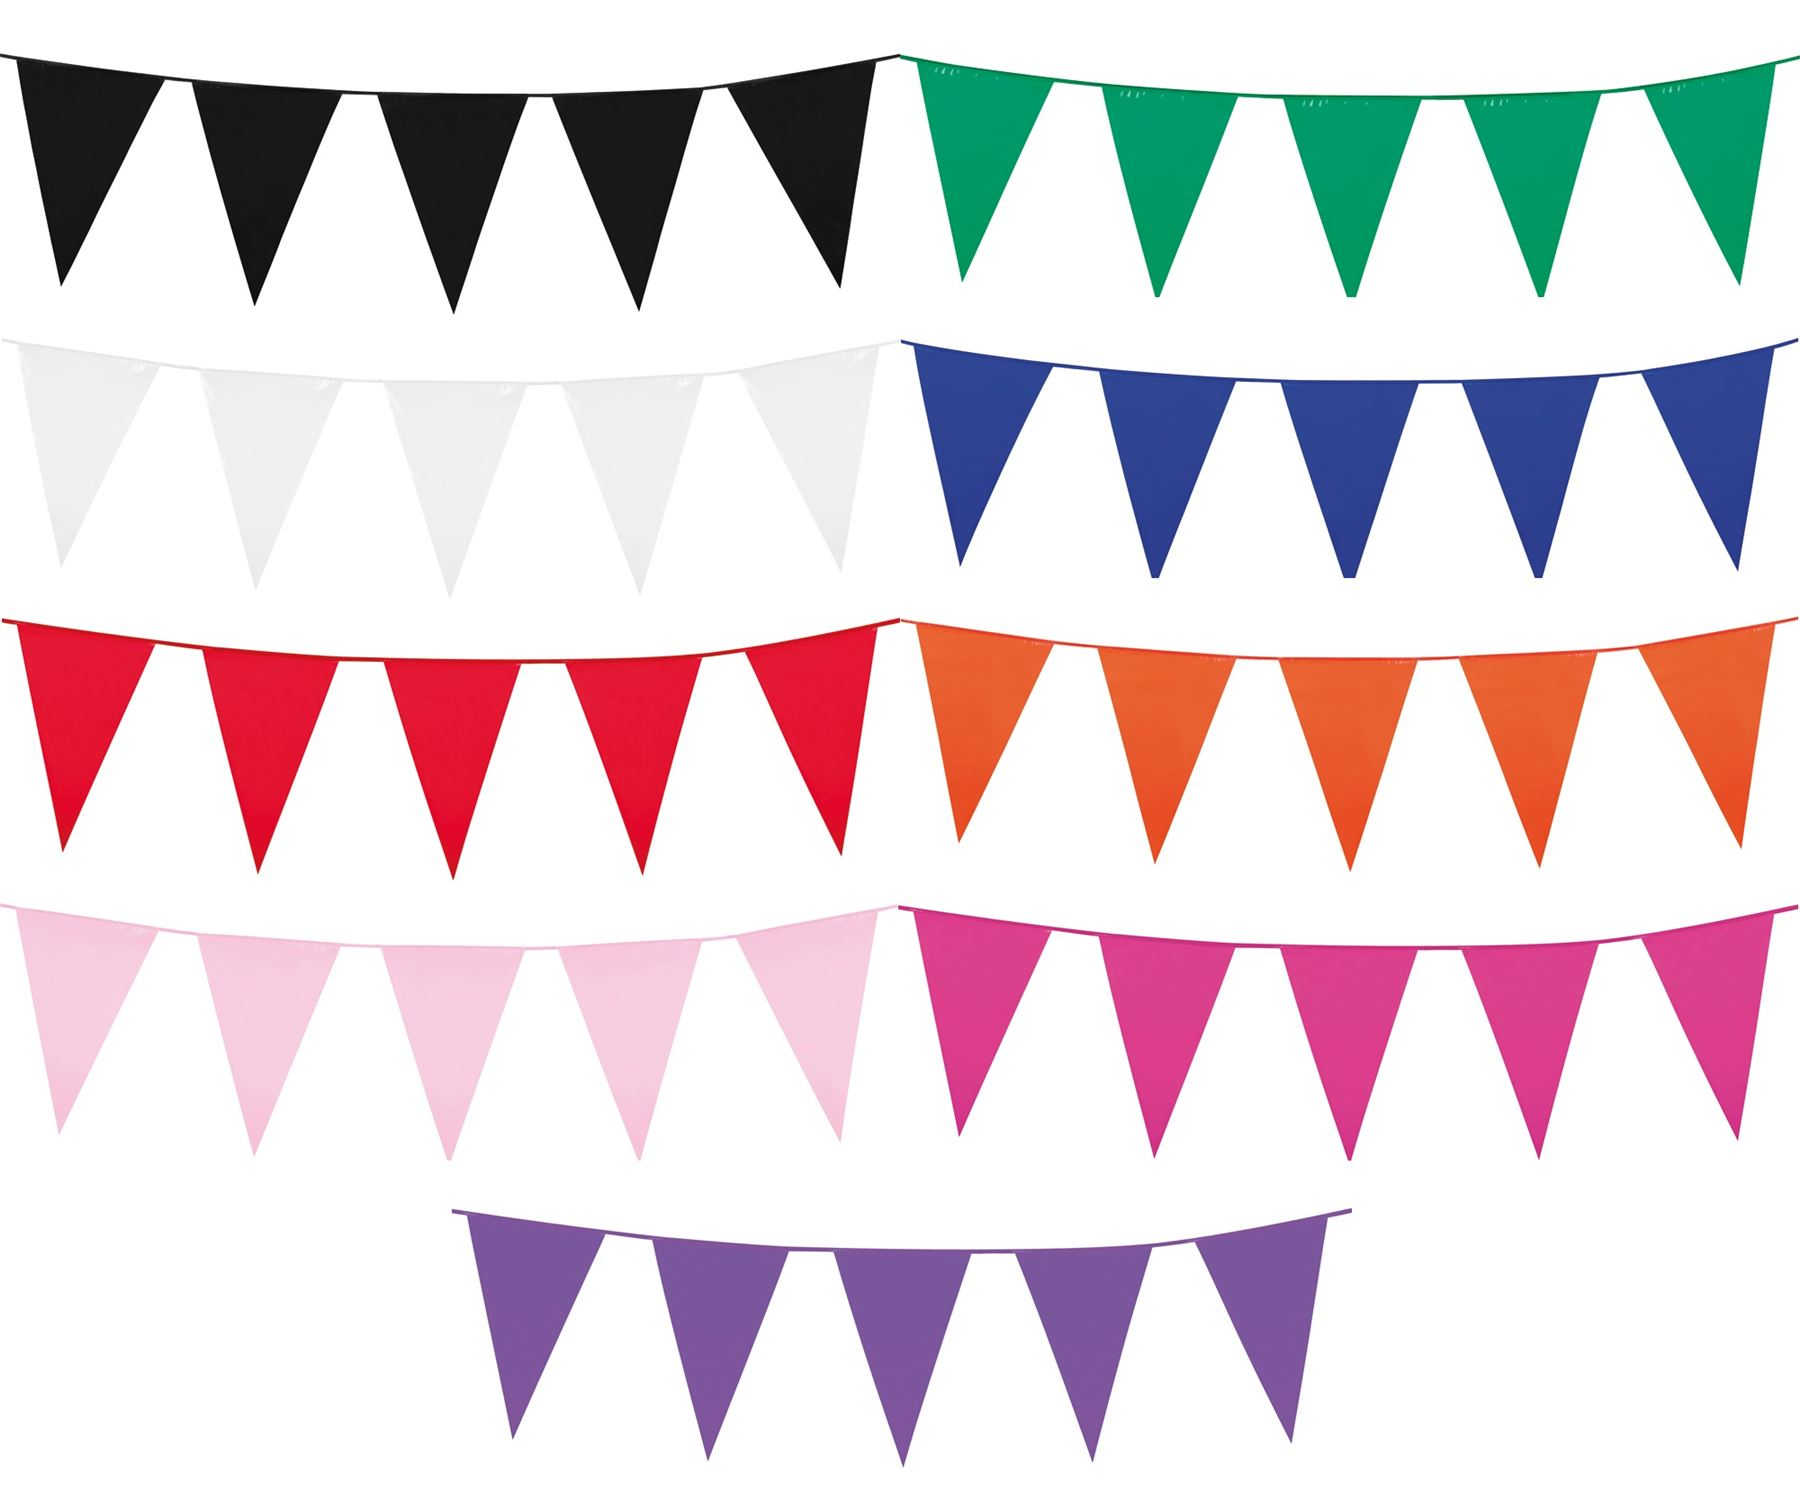 Summer pennant banner clipart graphic stock Pennant clipart summer - 196 transparent clip arts, images ... graphic stock